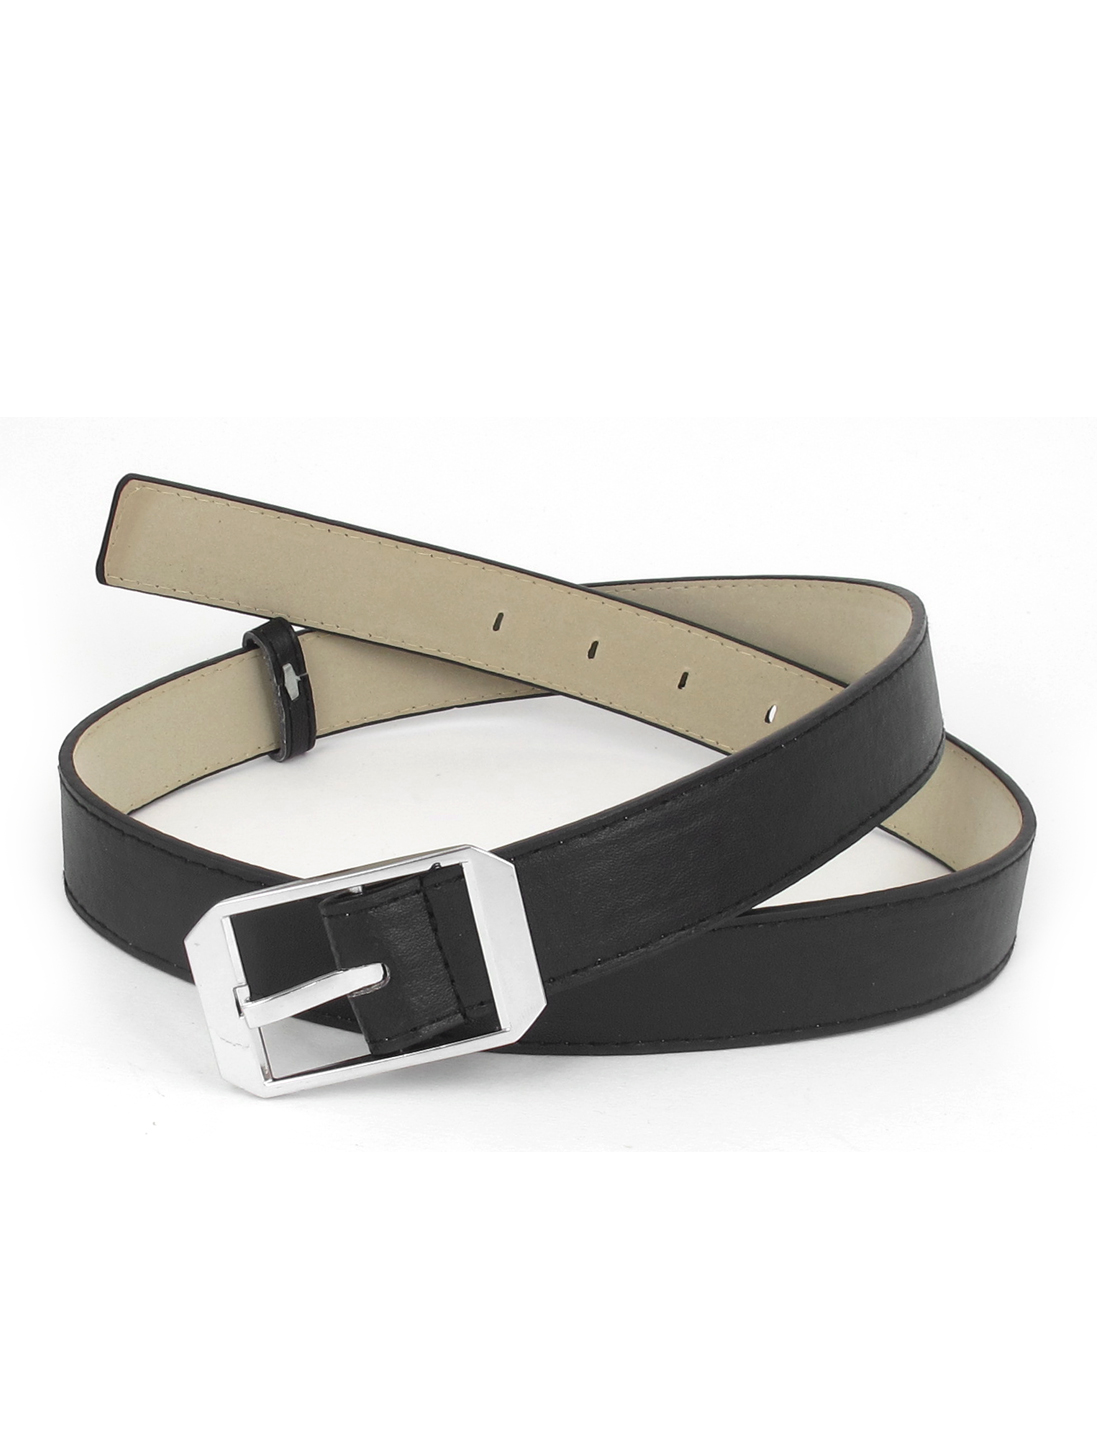 Lady Metal Single Pin Buckle 5 Holes Design Adjustable Faux Leather Waist Belt Waistbelt Black